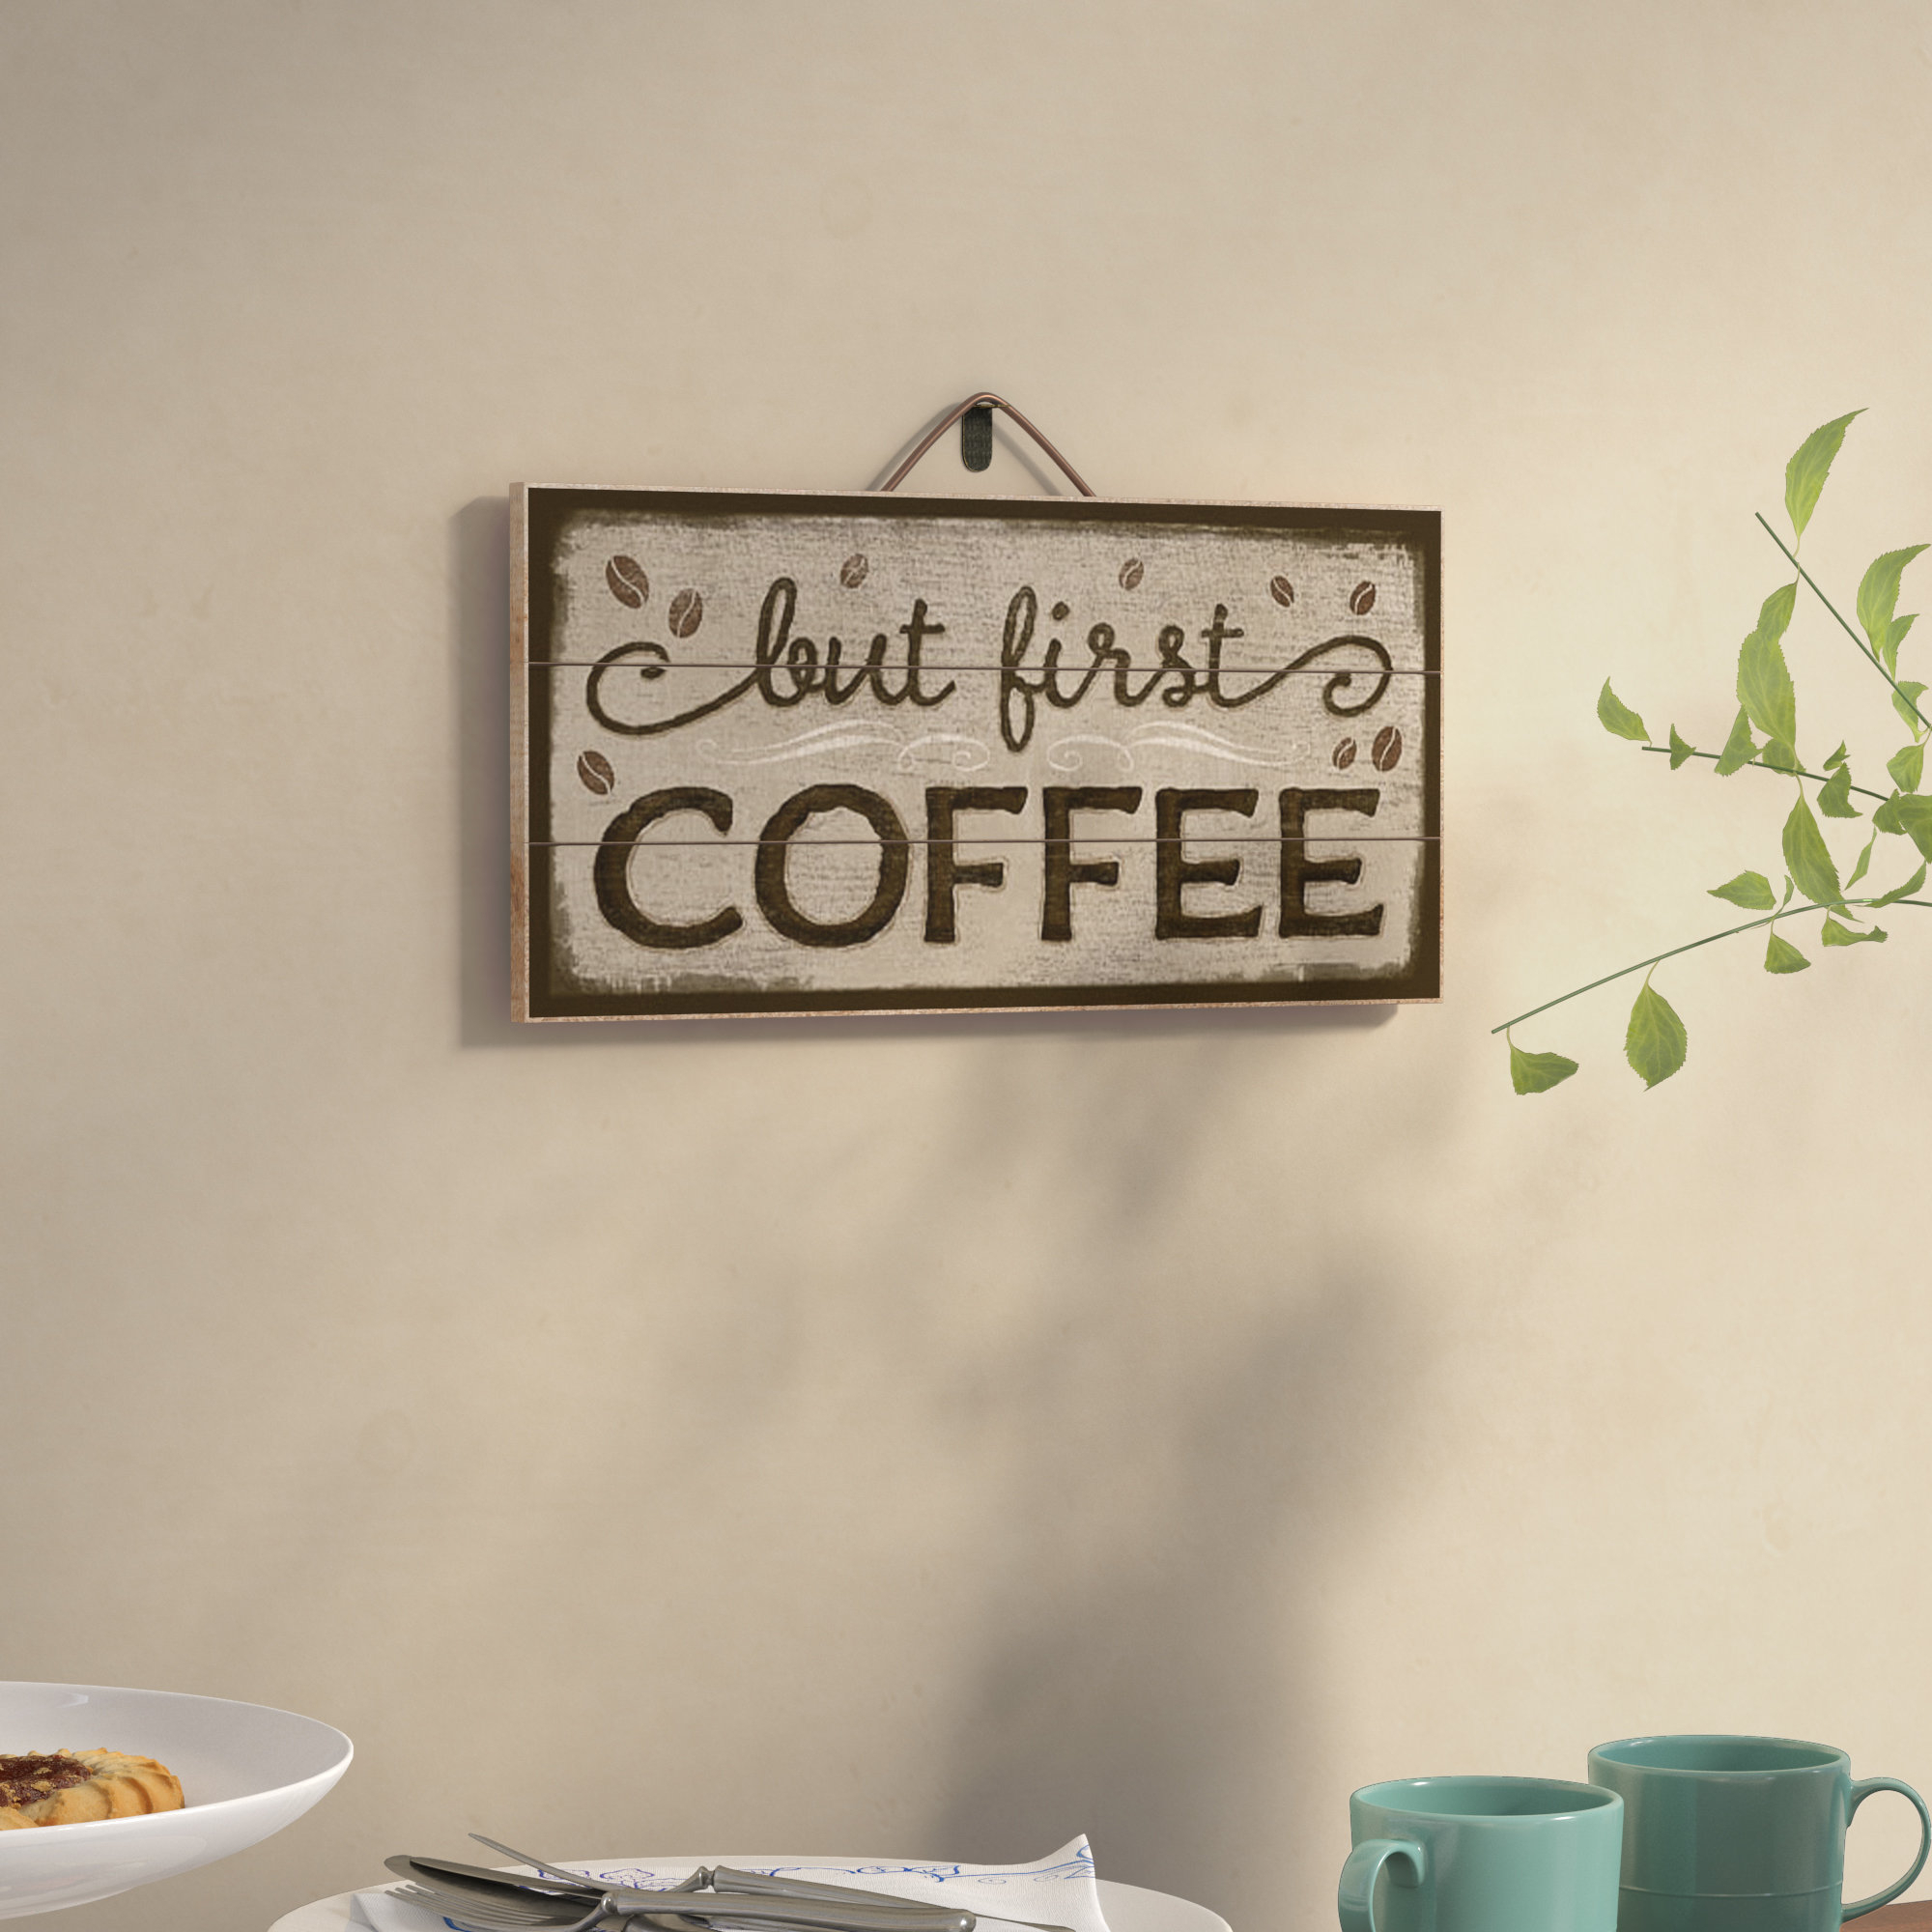 Coffee Signs | Wayfair in Coffee Sign With Rebar Wall Decor (Image 4 of 30)